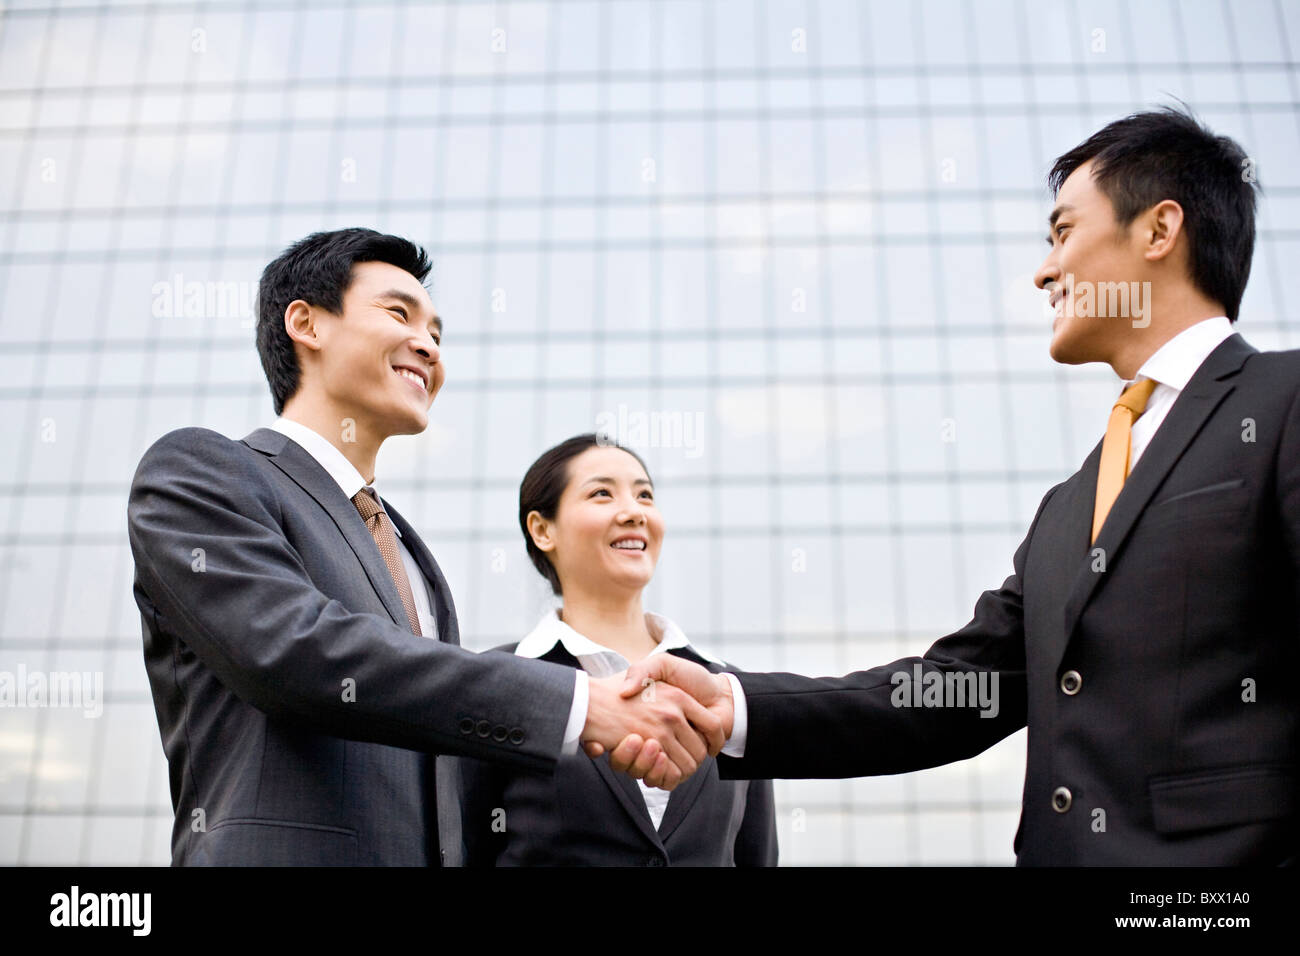 Businessmen shaking hands in front of a tall building - Stock Image